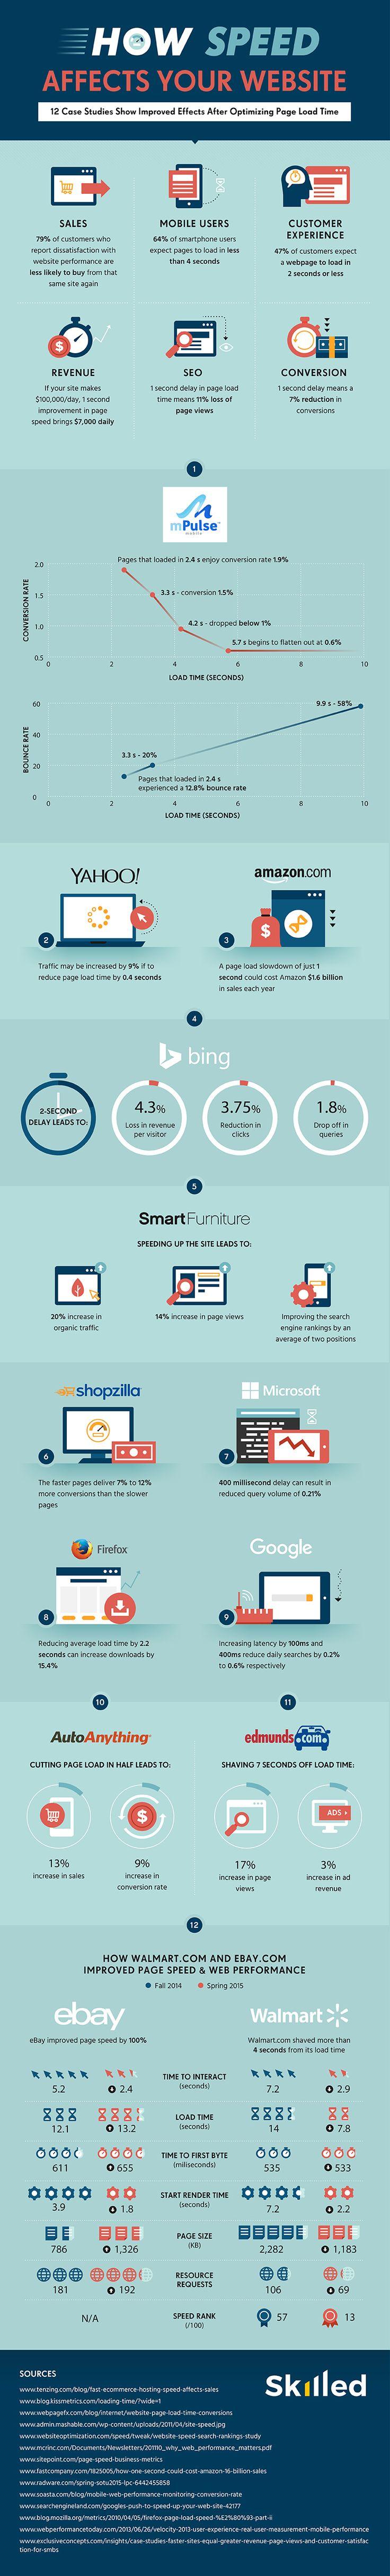 How Website Speed Affects Your Bottom Line: Optimize Web Page Load Time [Infographic]